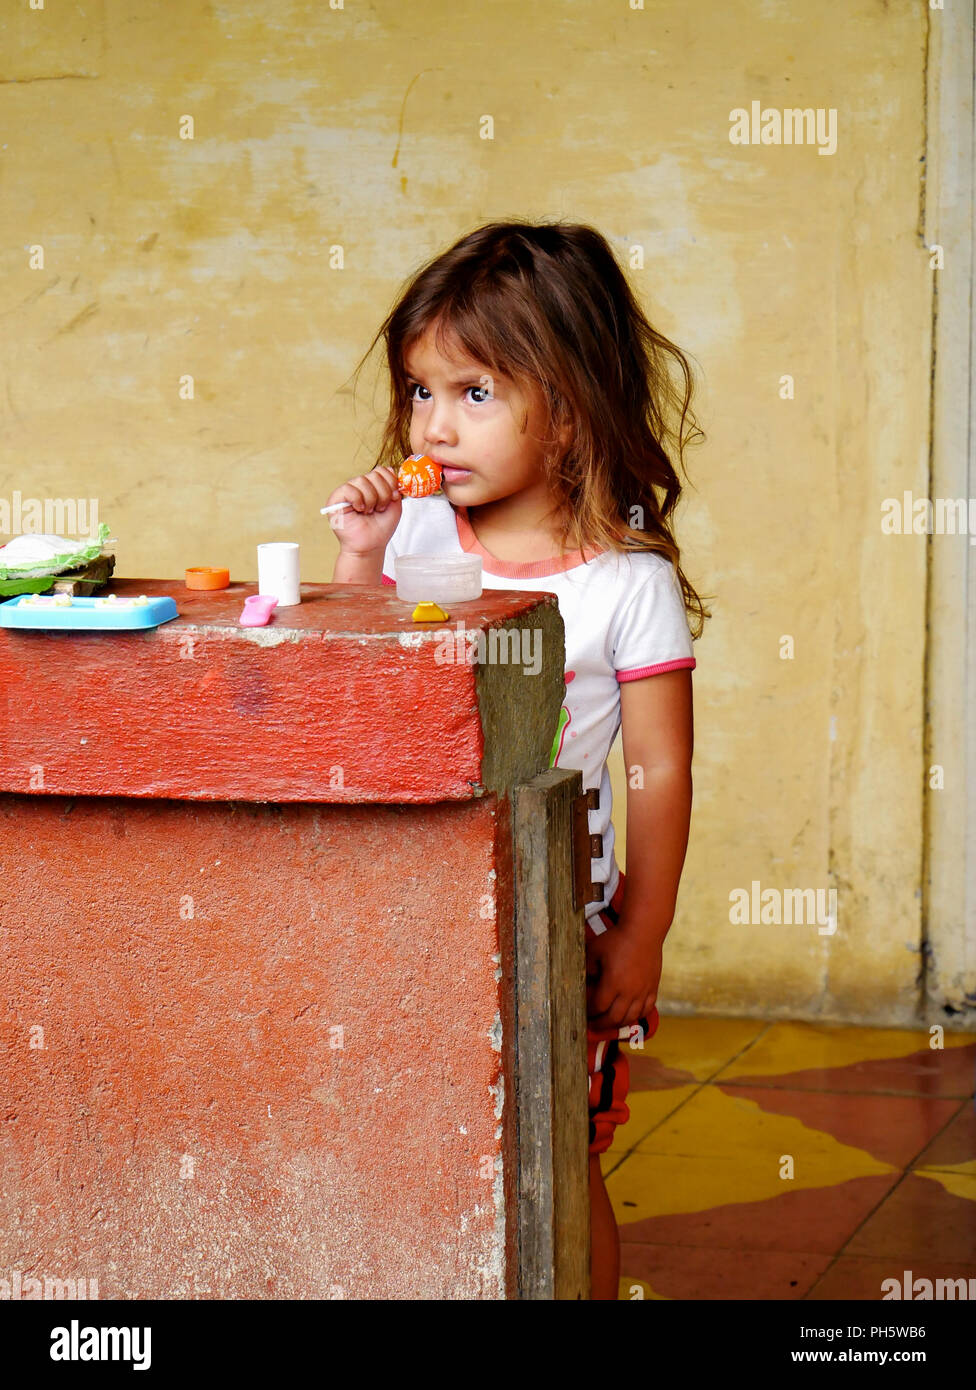 little poor girl eating an unopened lollipop in her house during a catholic mission in holy week - Stock Image